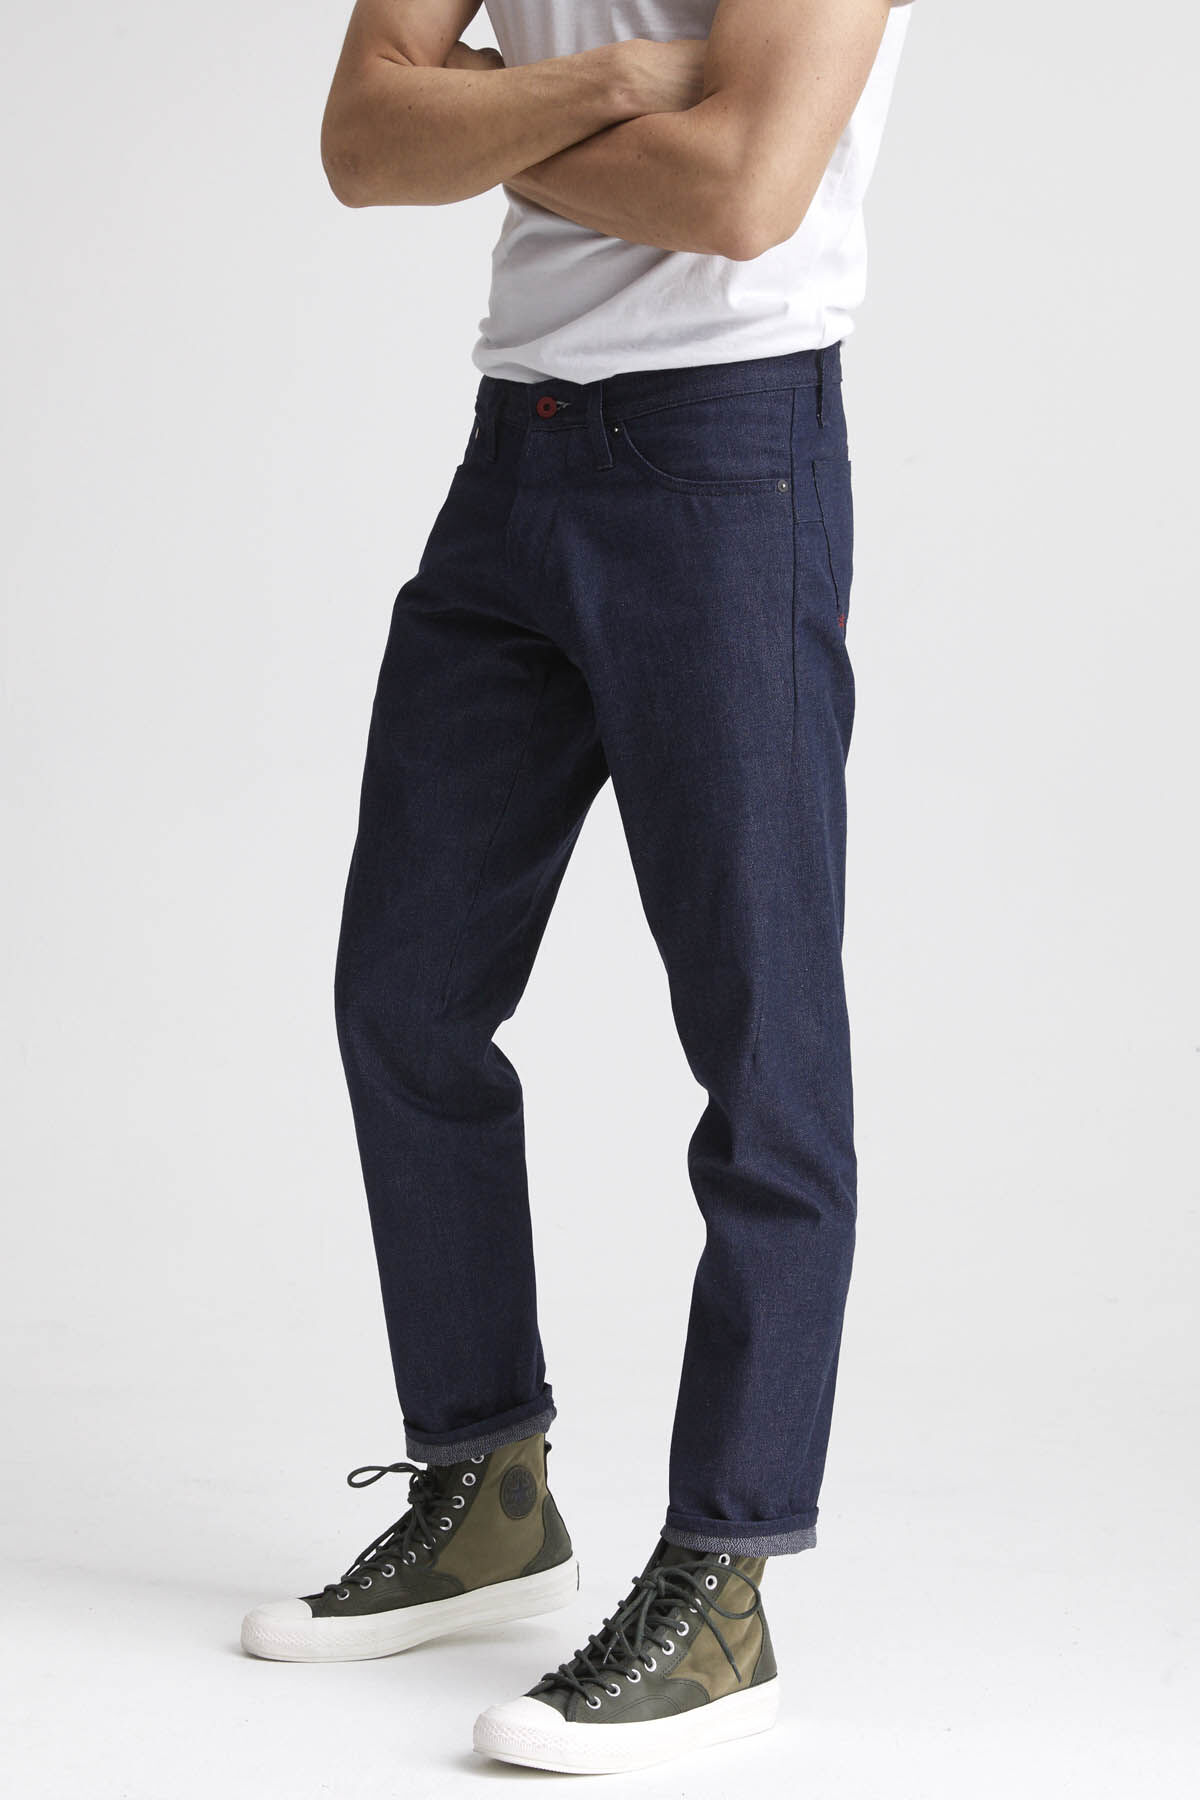 KINETIC Unwashed Recycled Cotton Denim - Tapered Fit